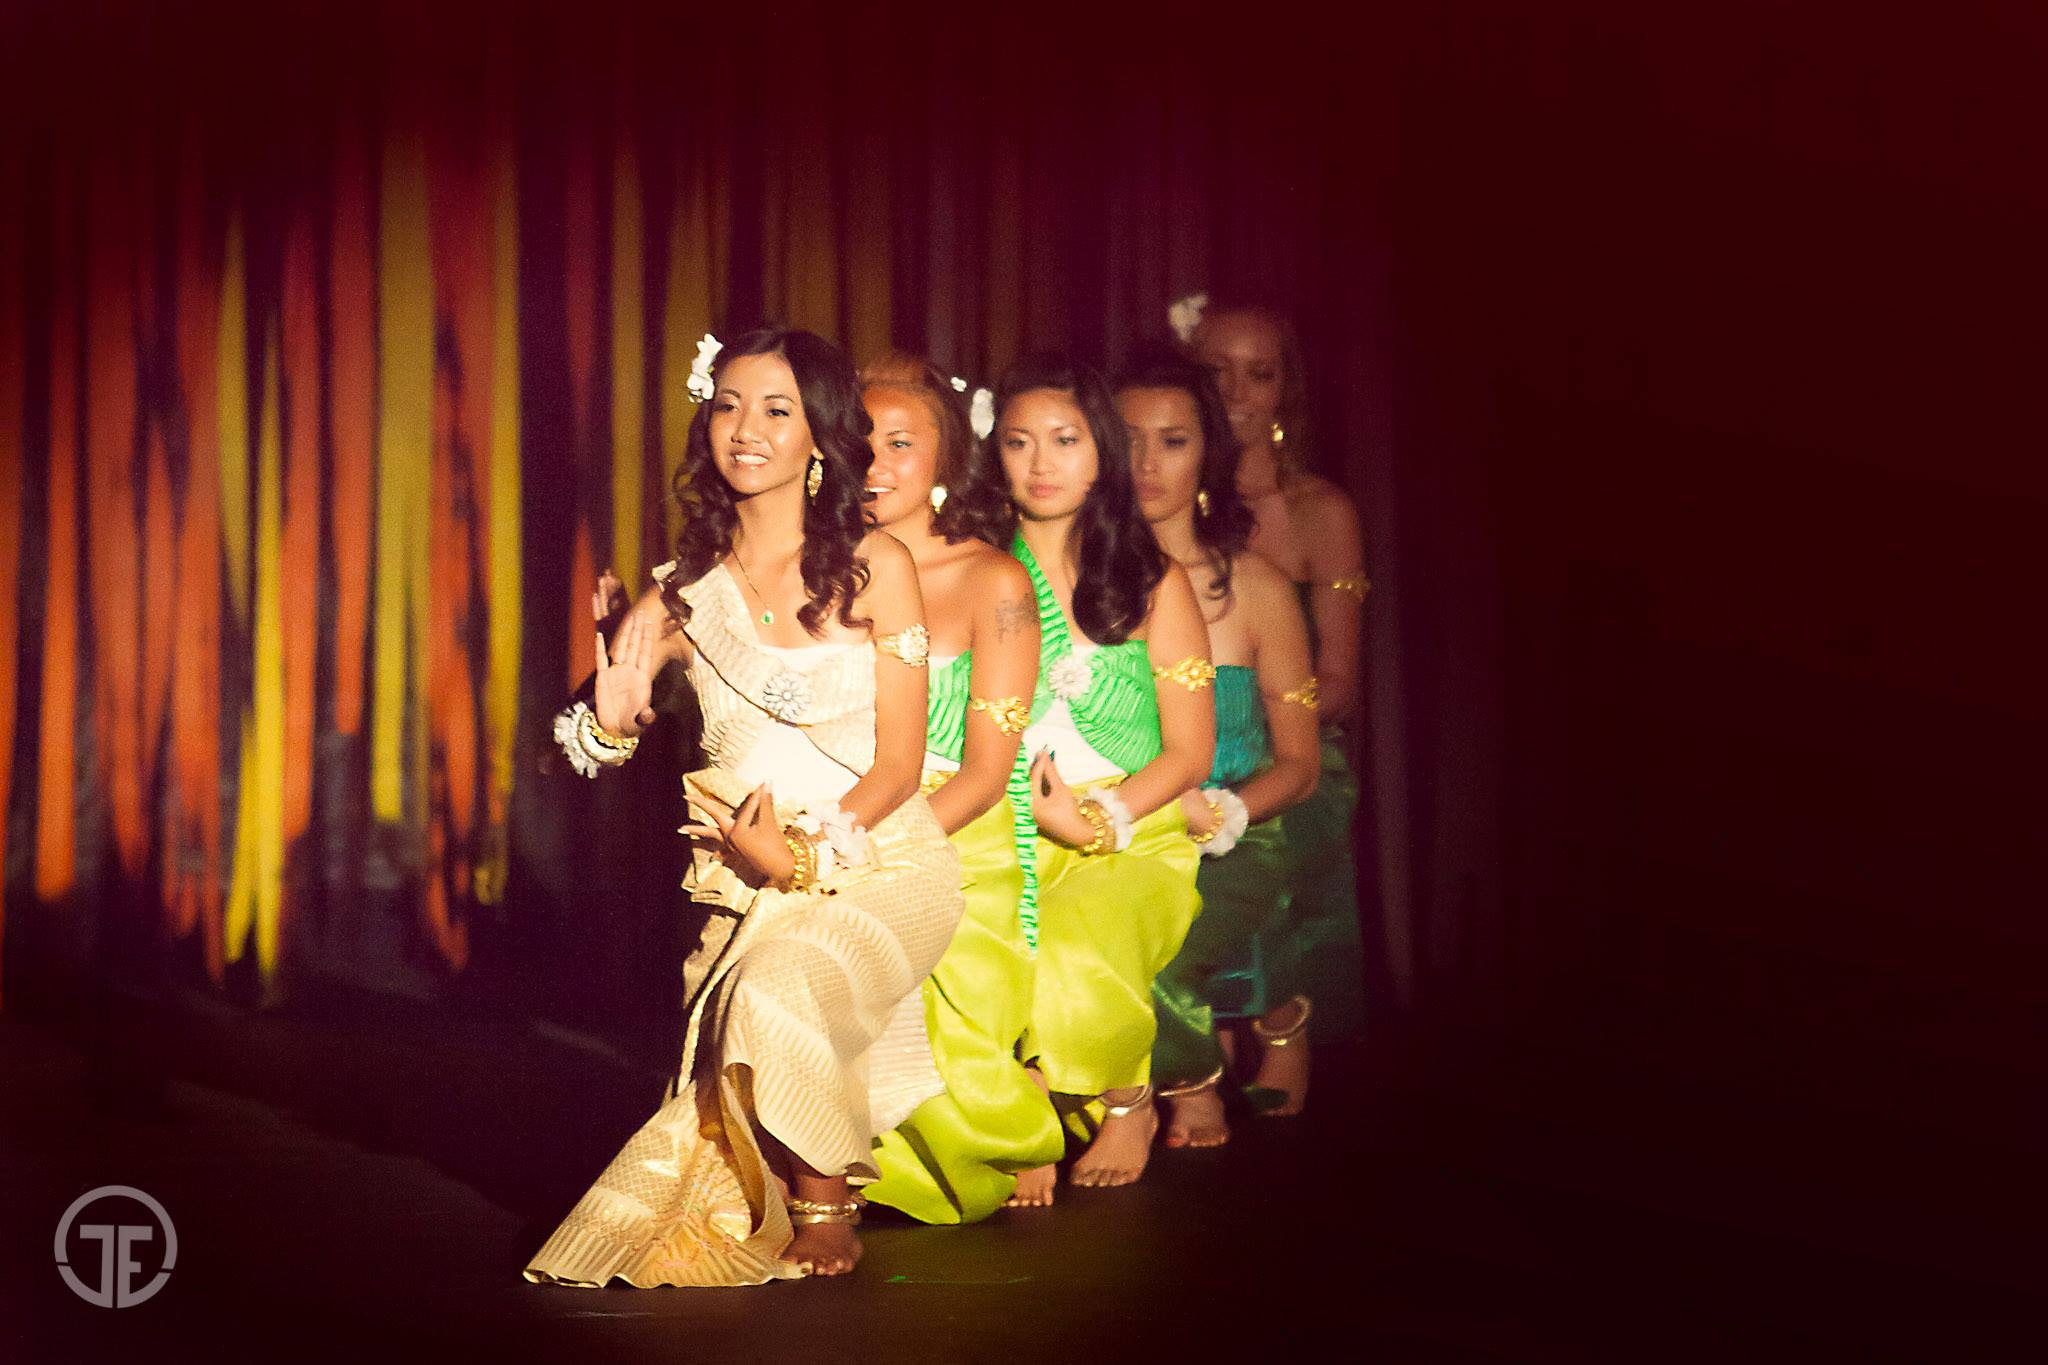 Jennifer, one of the dancers from SOCCA, expressed her talents in the Miss Asian American Colorado finale show with traditional Cambodian dancing